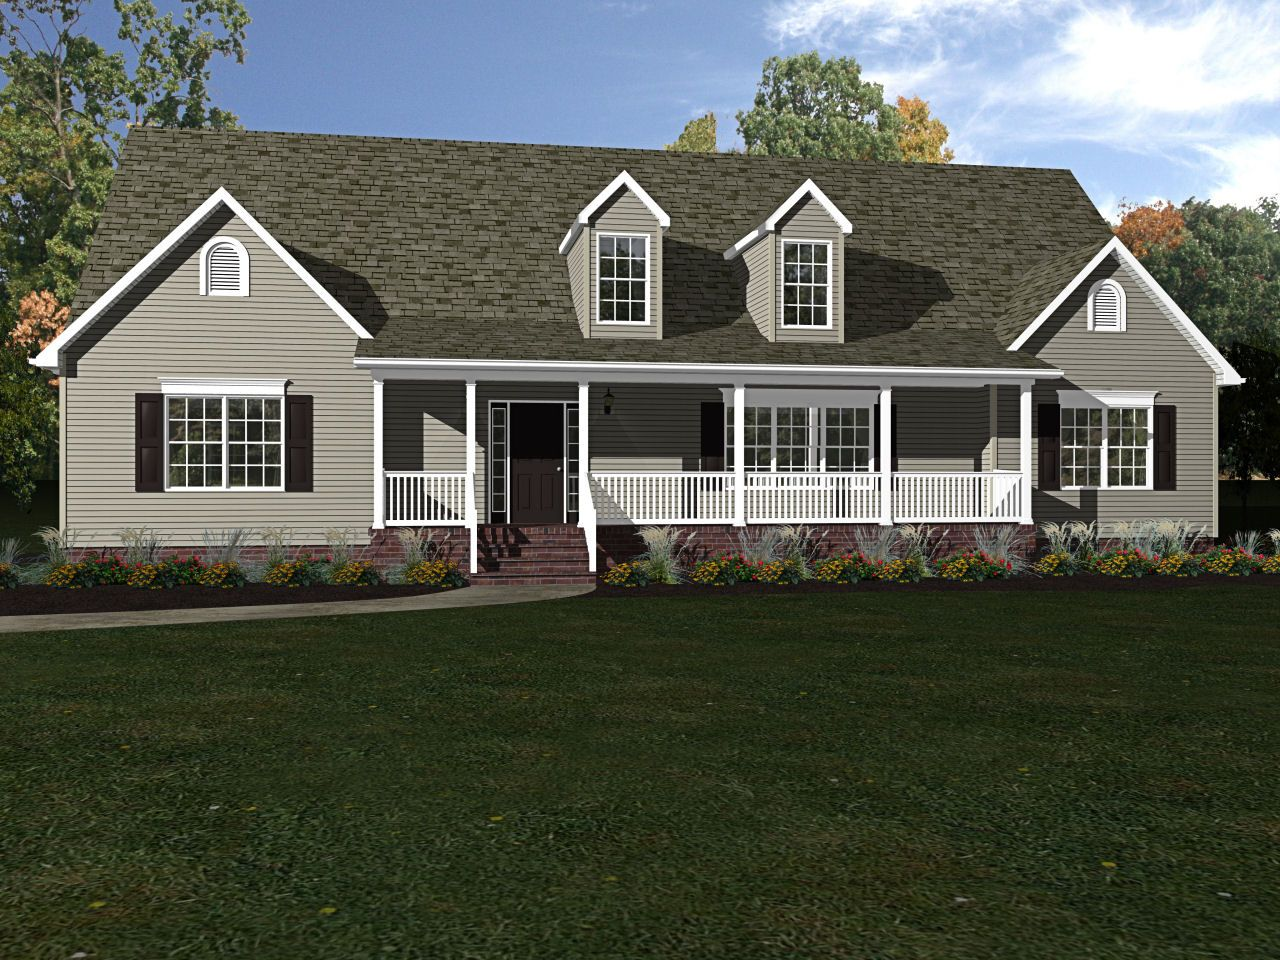 The is a model home at Beracah's Sales